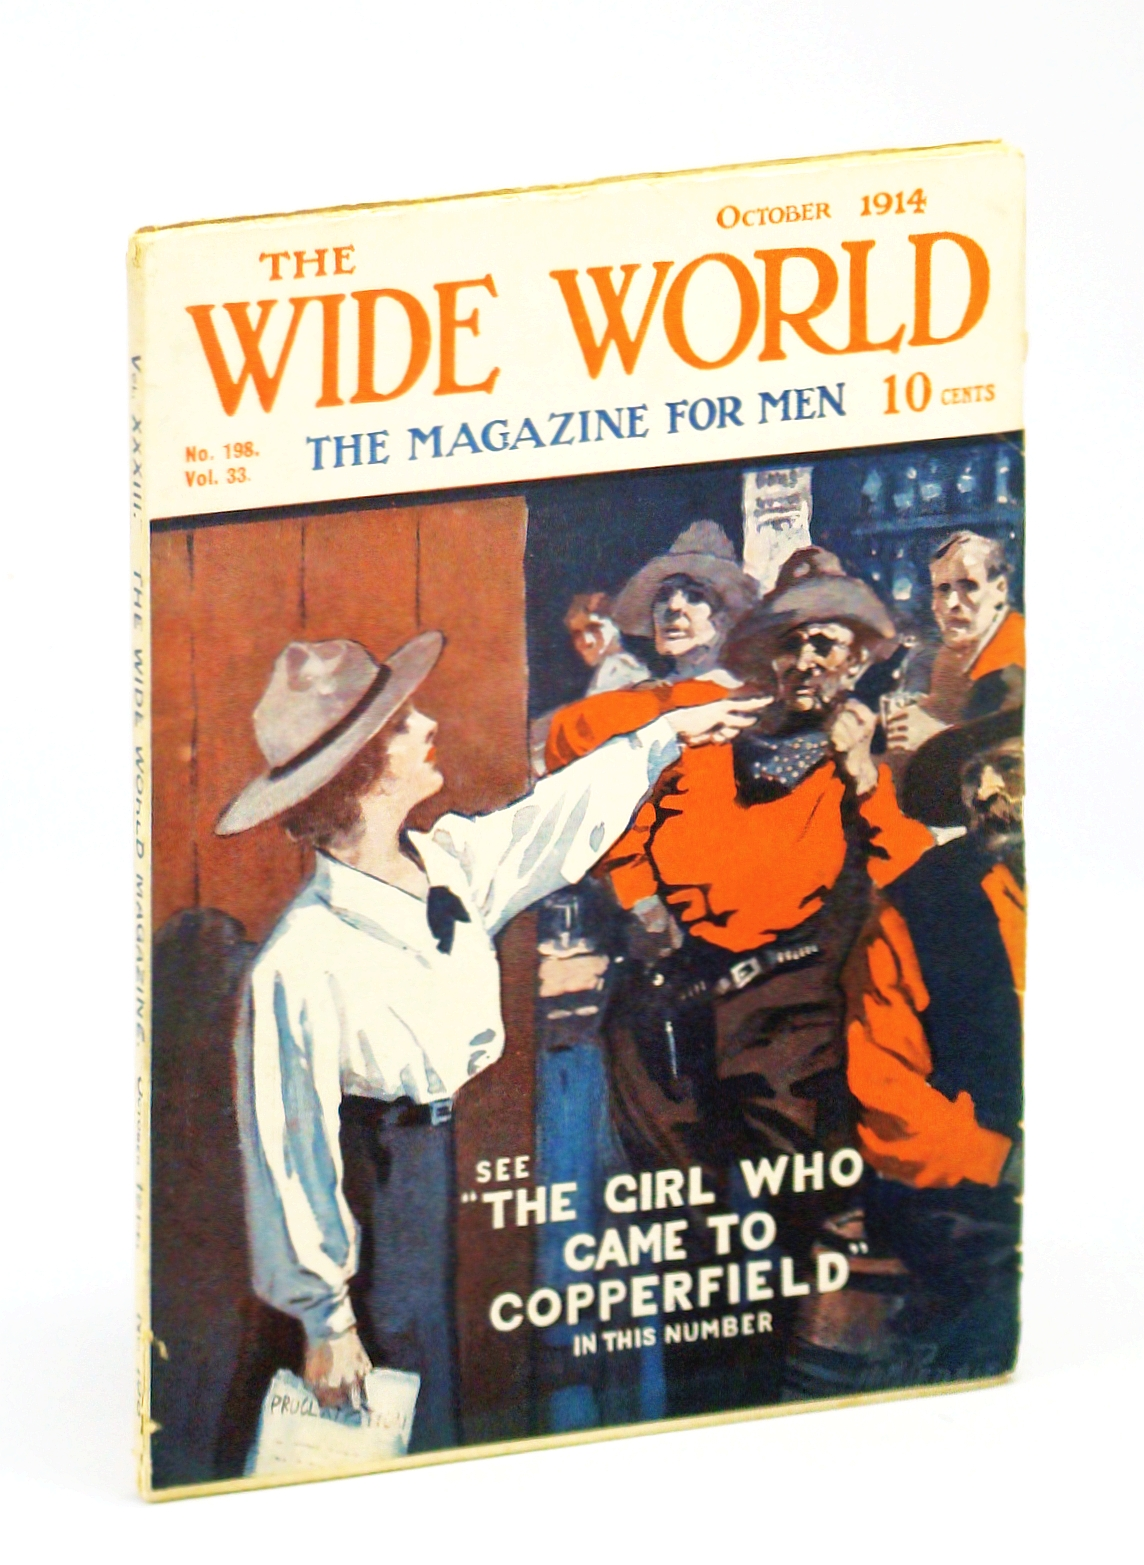 Image for The Wide World  - The Magazine For Men, October (Oct.) 1914, No. 198, Vol. 33 - My Escape from Kelantan / Across Canada By Motor-Car